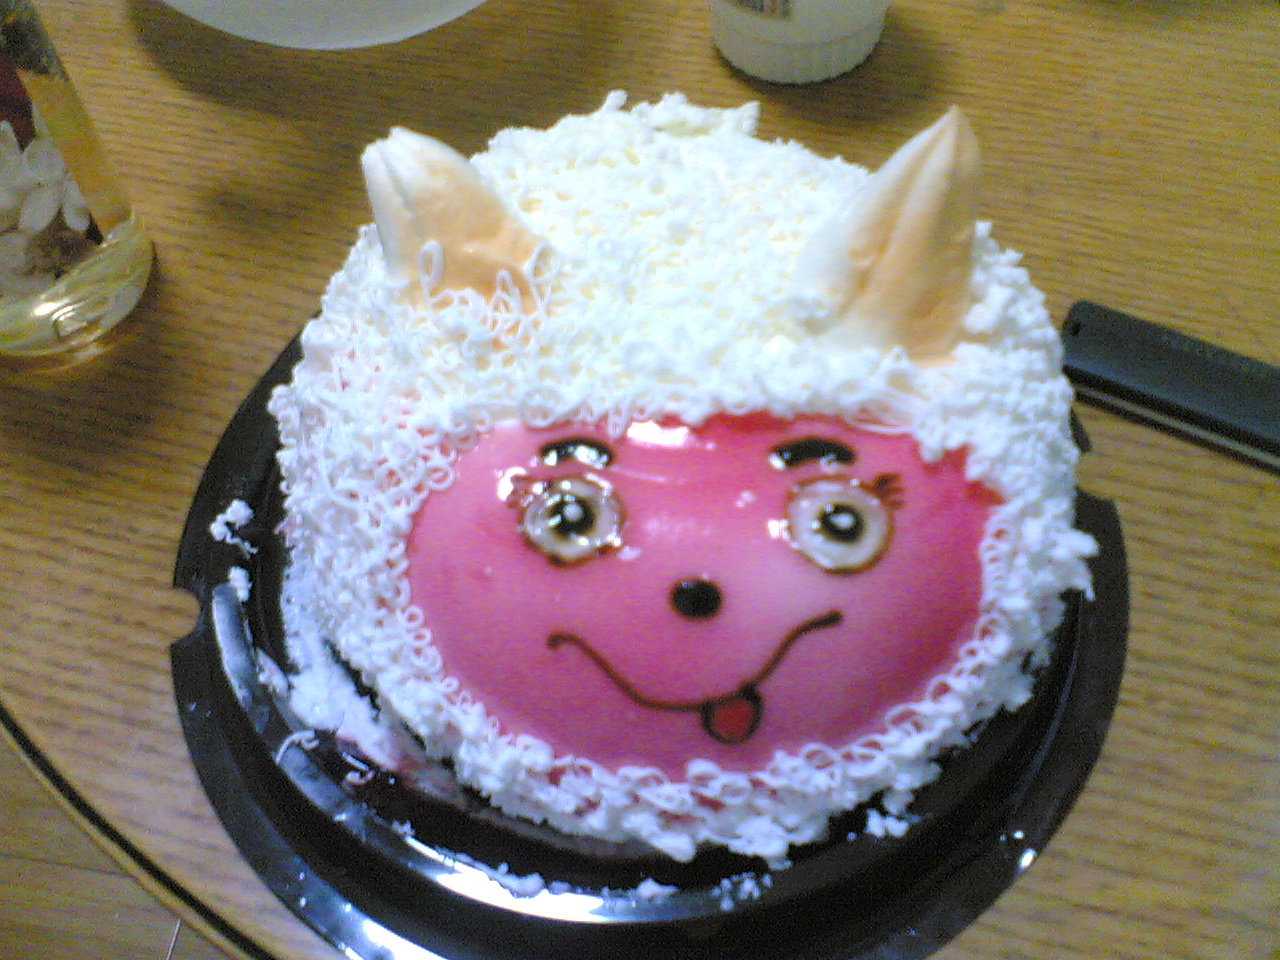 Ugly Cakes Shared Online By Chinese Netizens – chinaSMACK